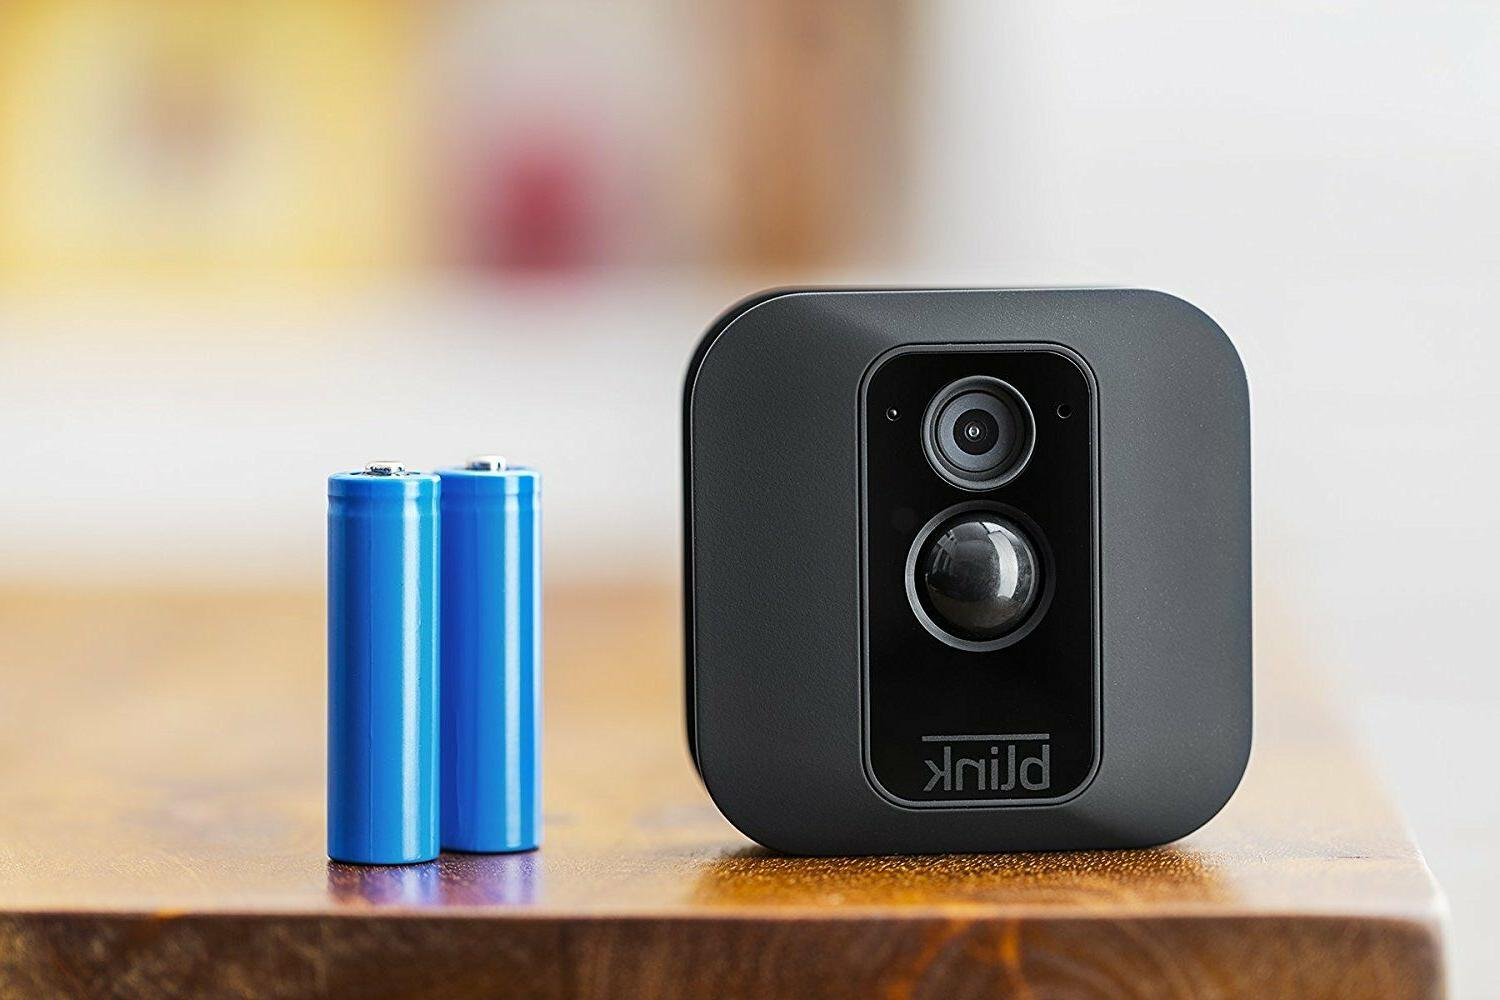 Blink Home Security Detection, Wall Video